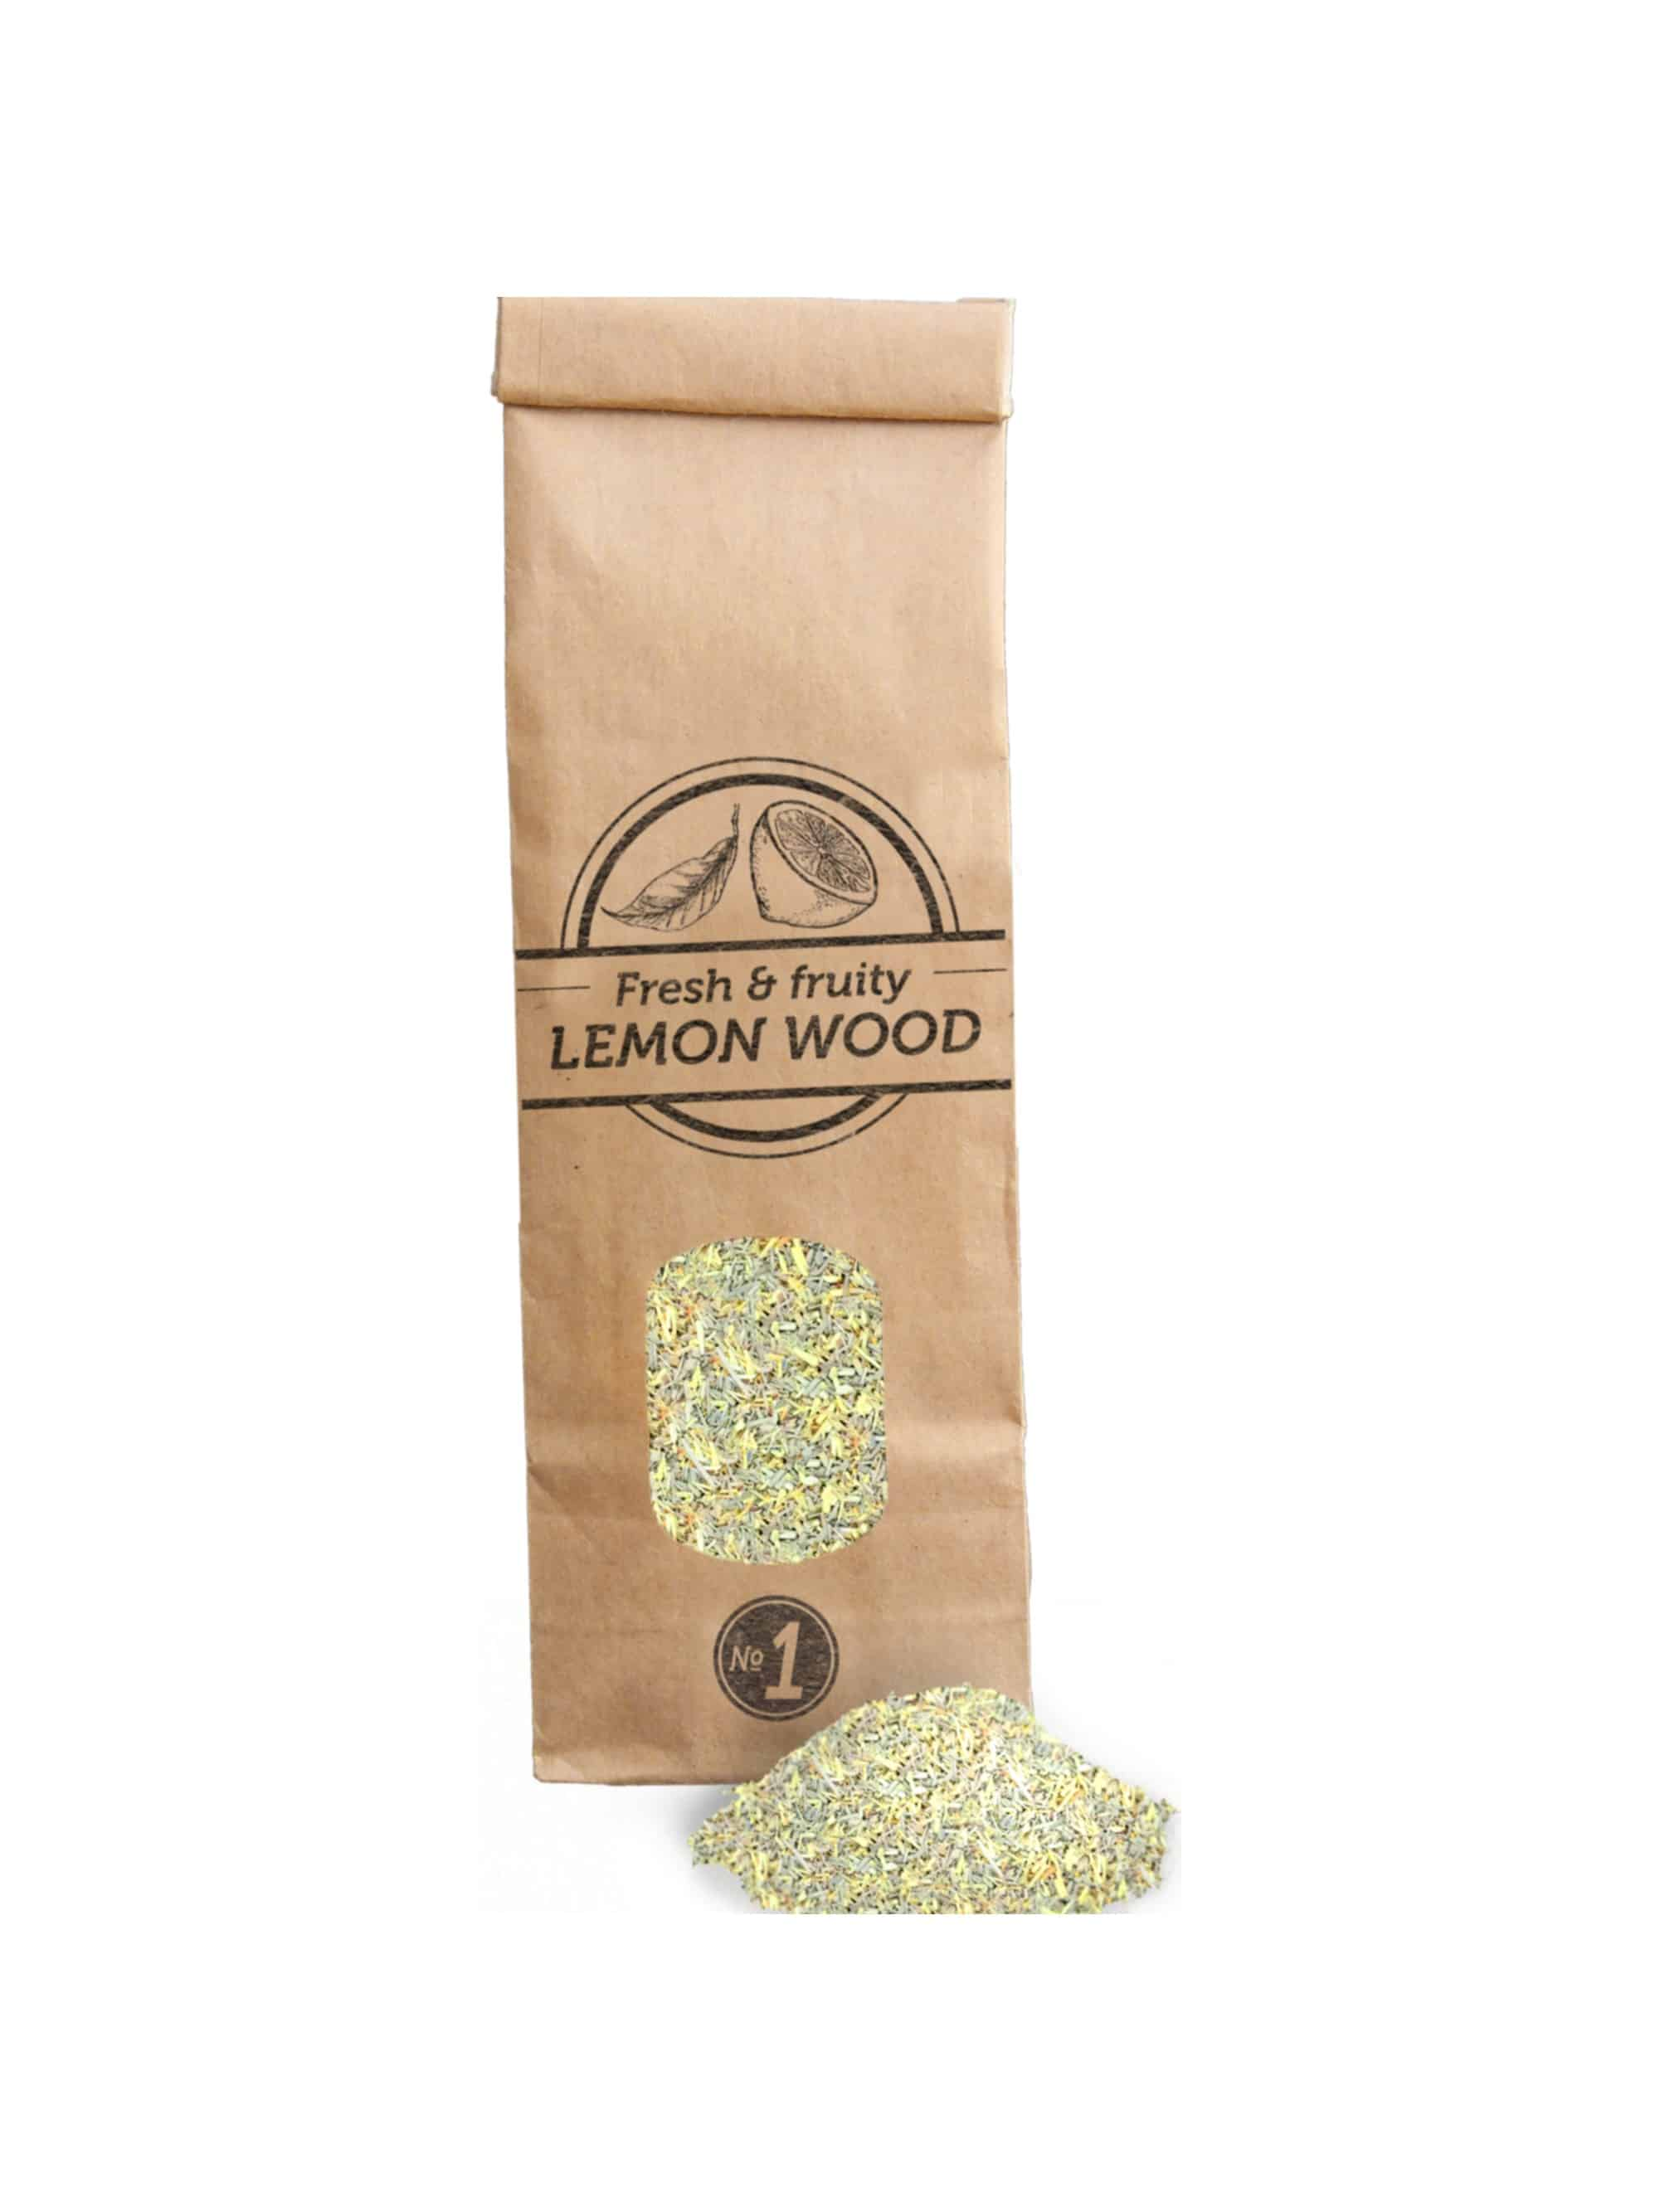 SOW Lemon Tree Smoking Dust Nº1